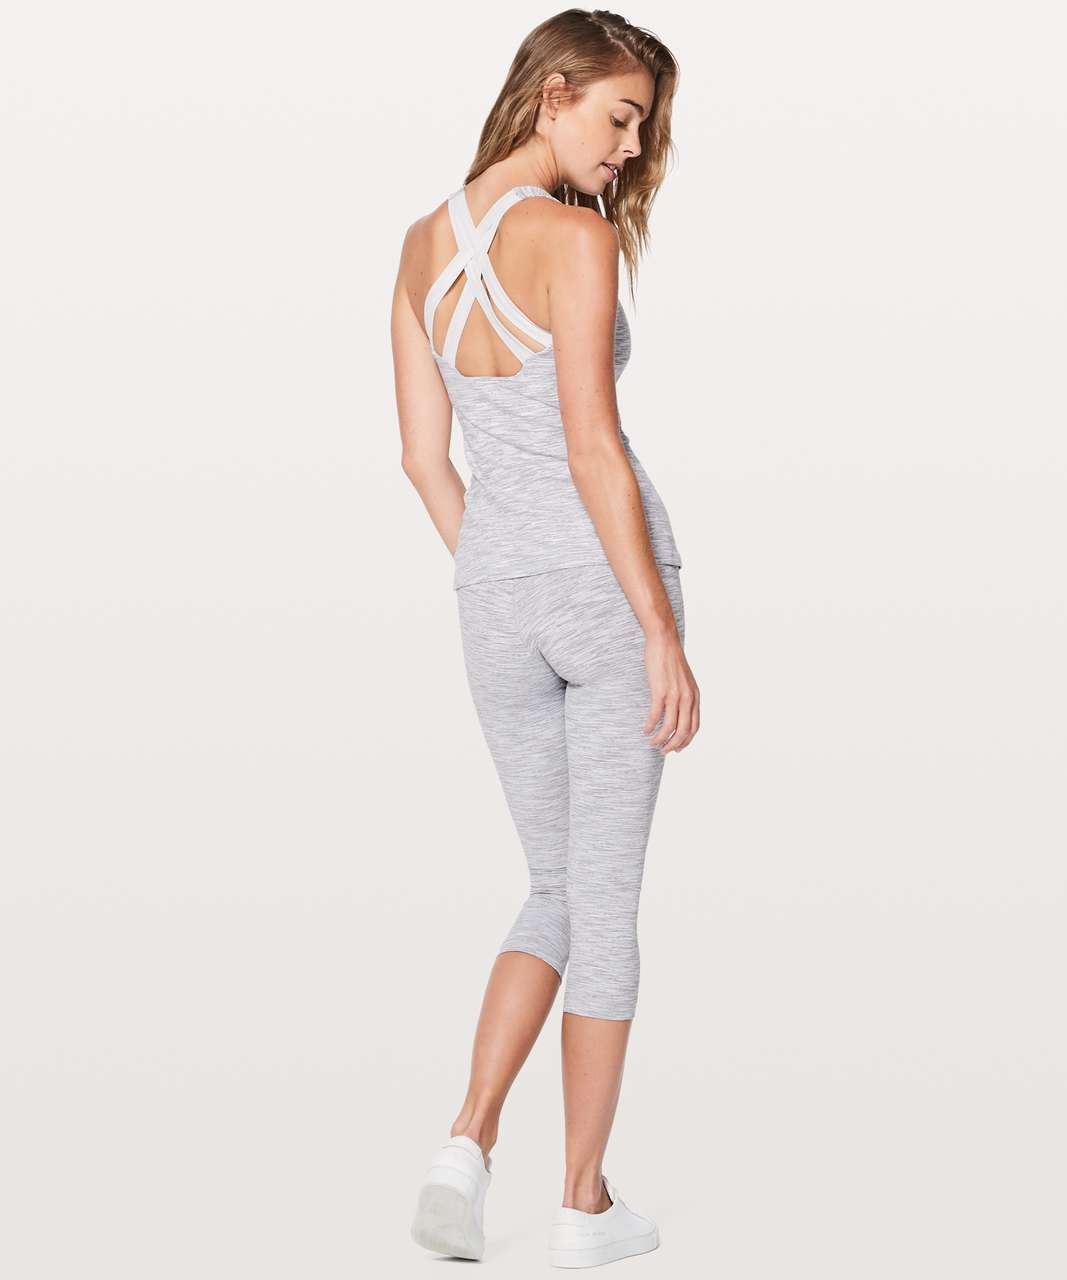 Lululemon Enhearten Tank - Wee Are From Space Ice Grey Alpine White